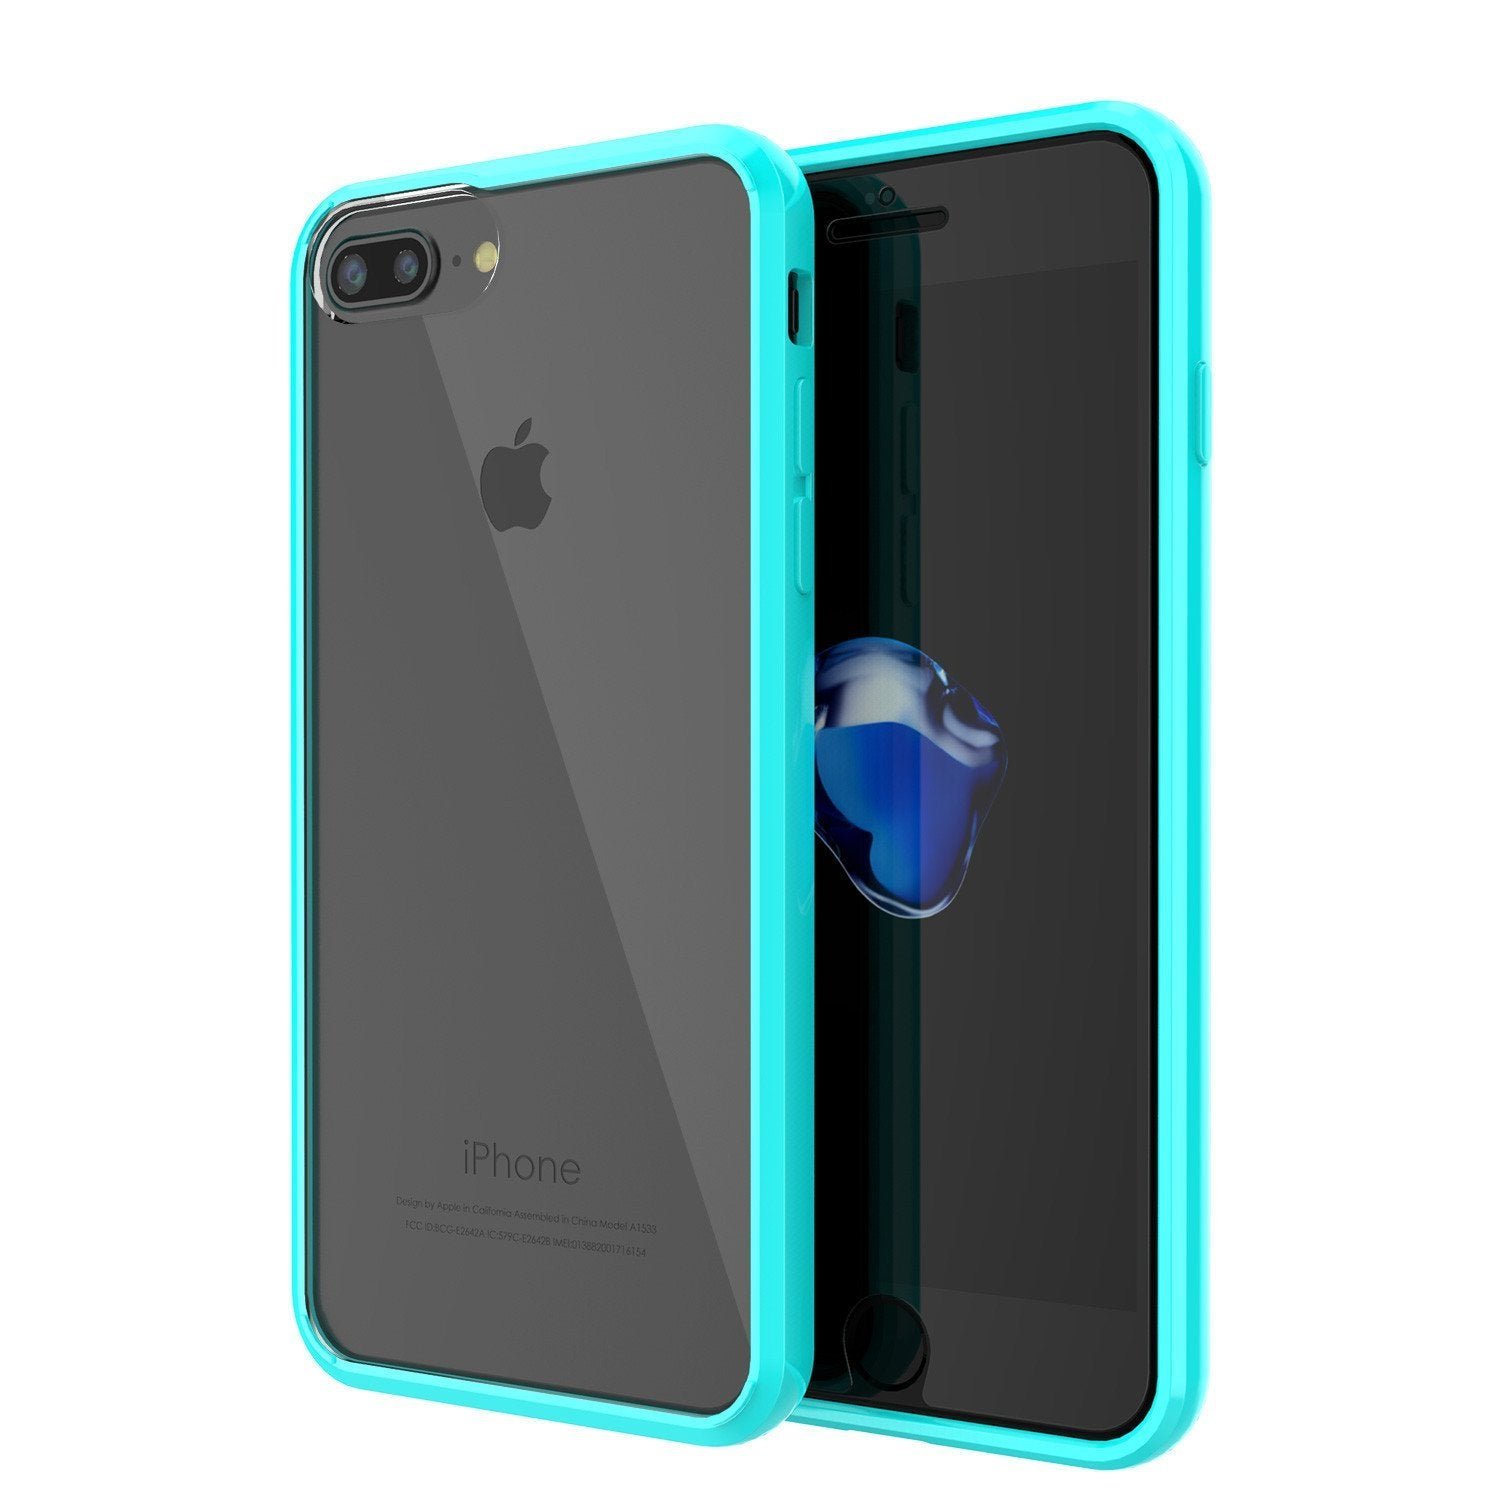 iPhone 8+ Plus Case Punkcase® LUCID 2.0 Teal Series w/ PUNK SHIELD Screen Protector | Ultra Fit